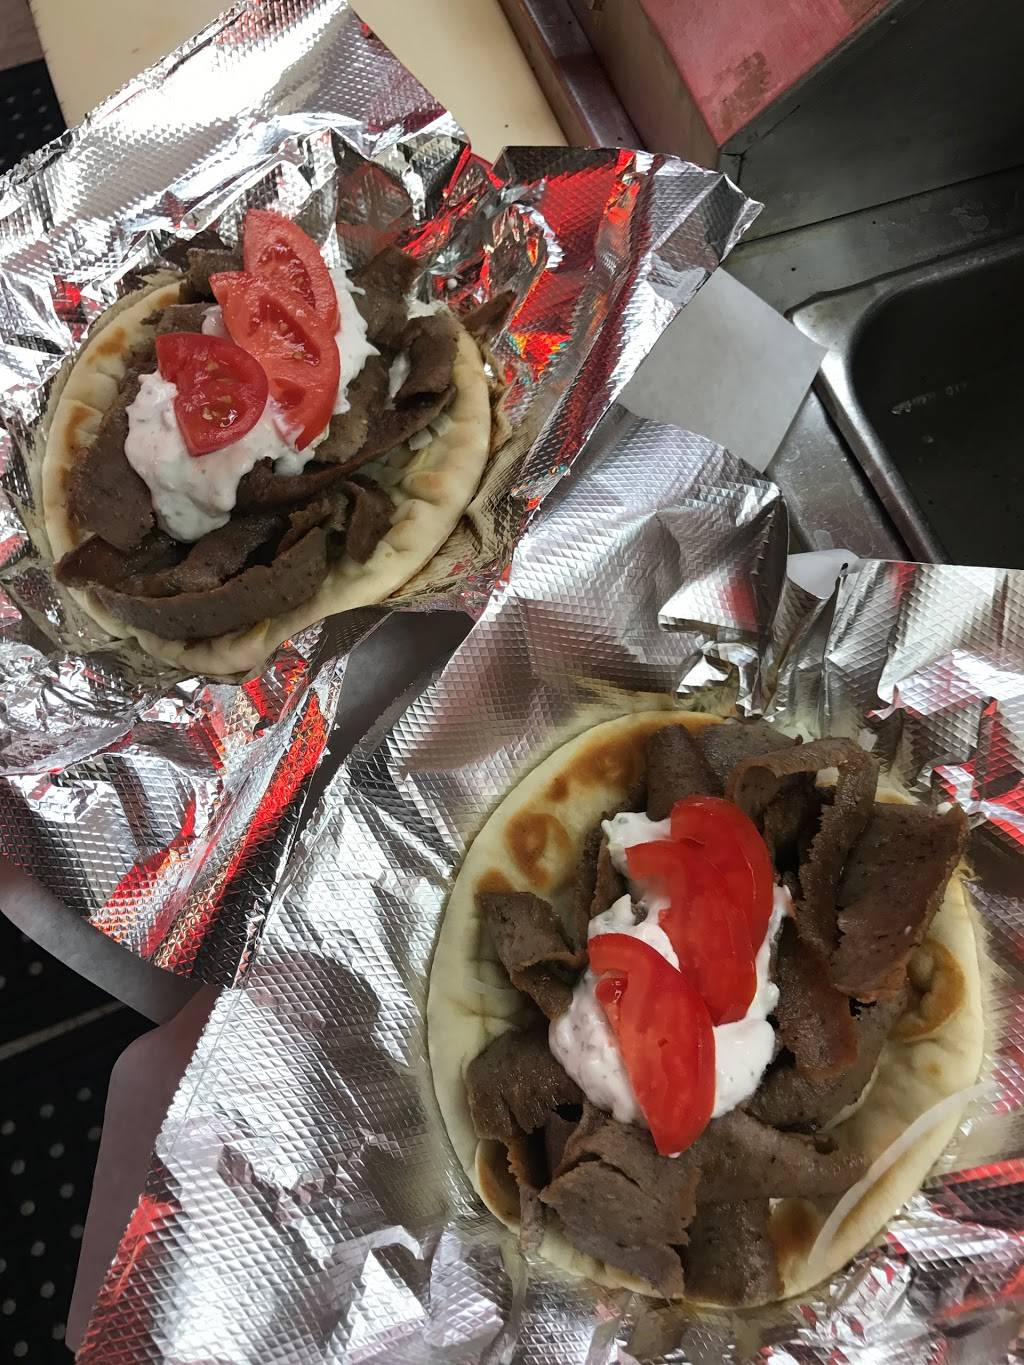 Scoobys Red Hot's | restaurant | 1039 S Arlington Heights Rd #c, Arlington Heights, IL 60005, USA | 8477180550 OR +1 847-718-0550